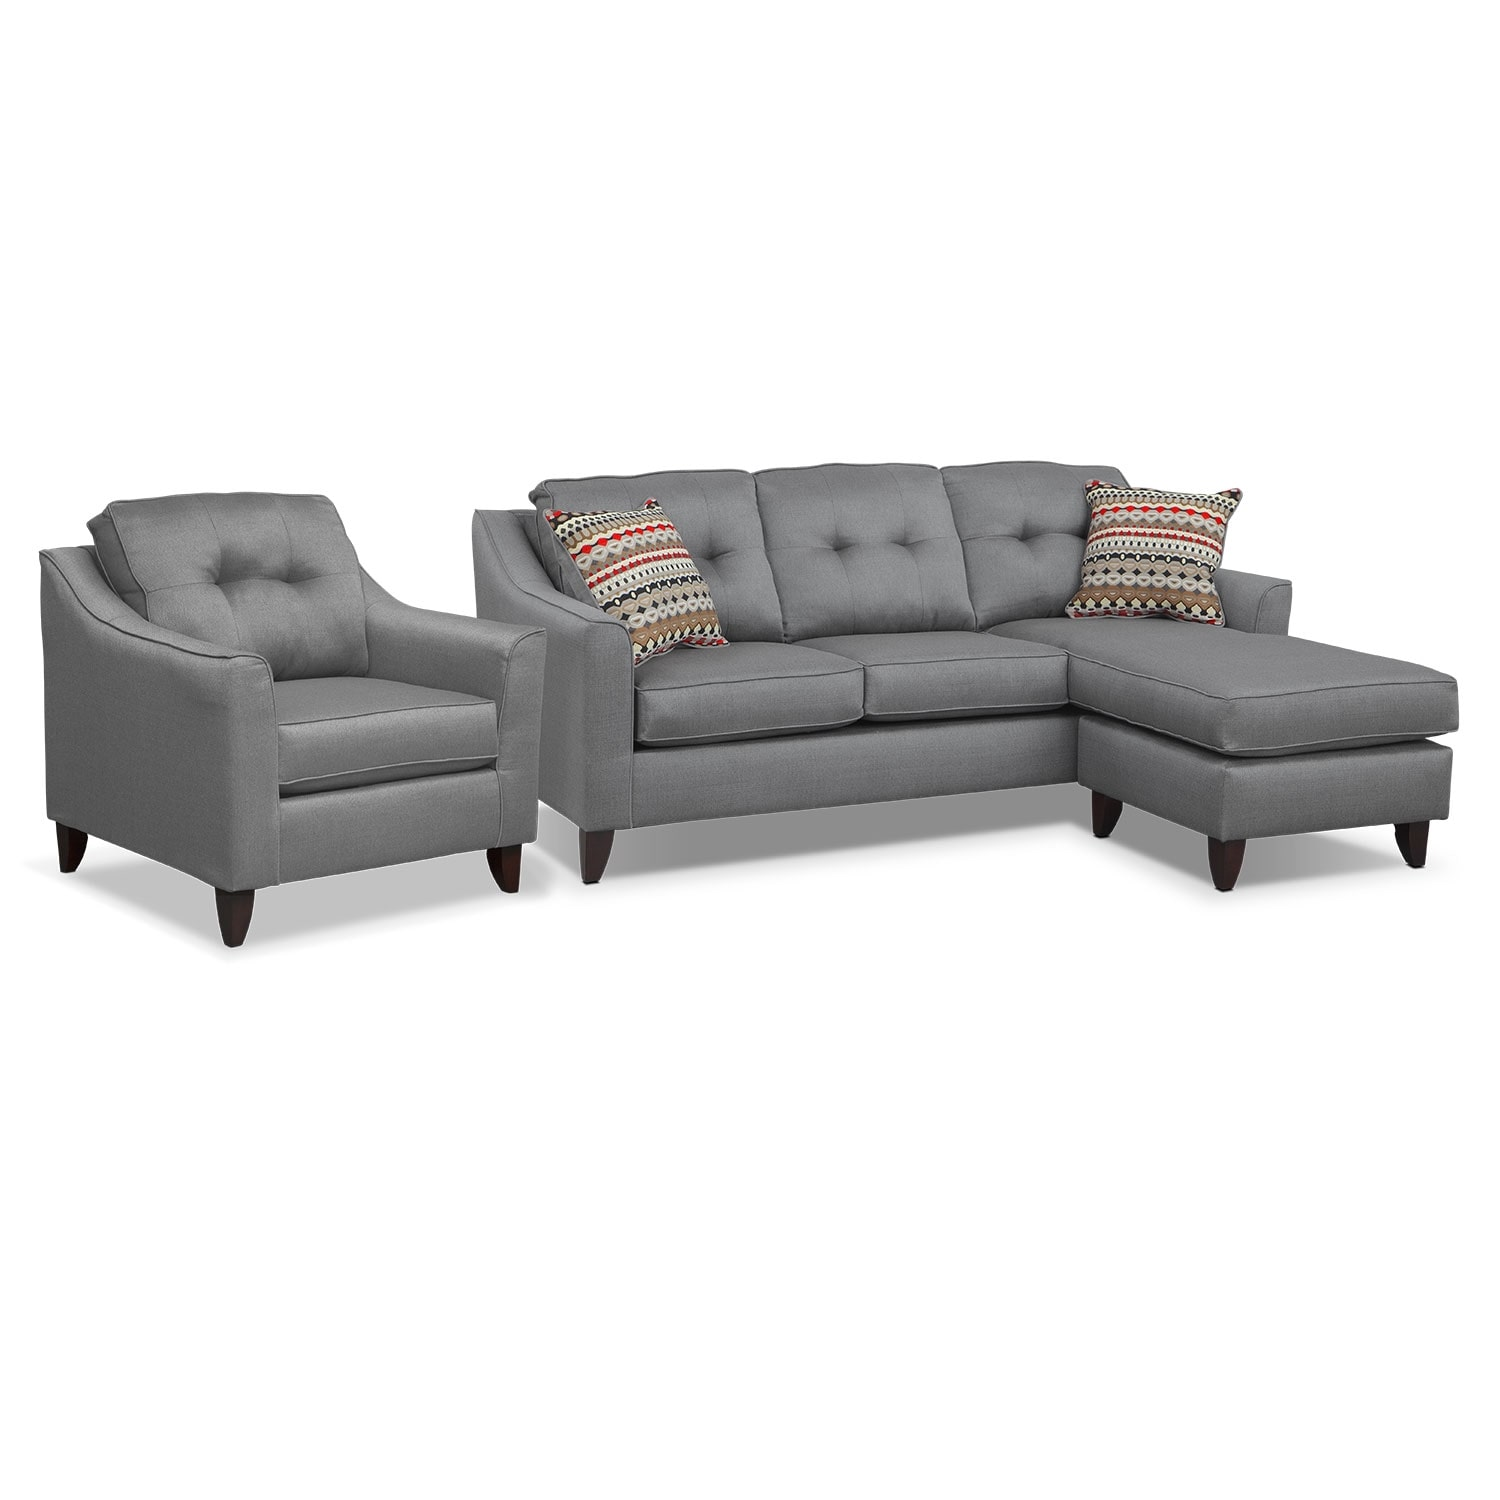 Chaise Sofa - Marco chaise sofa and chair set gray